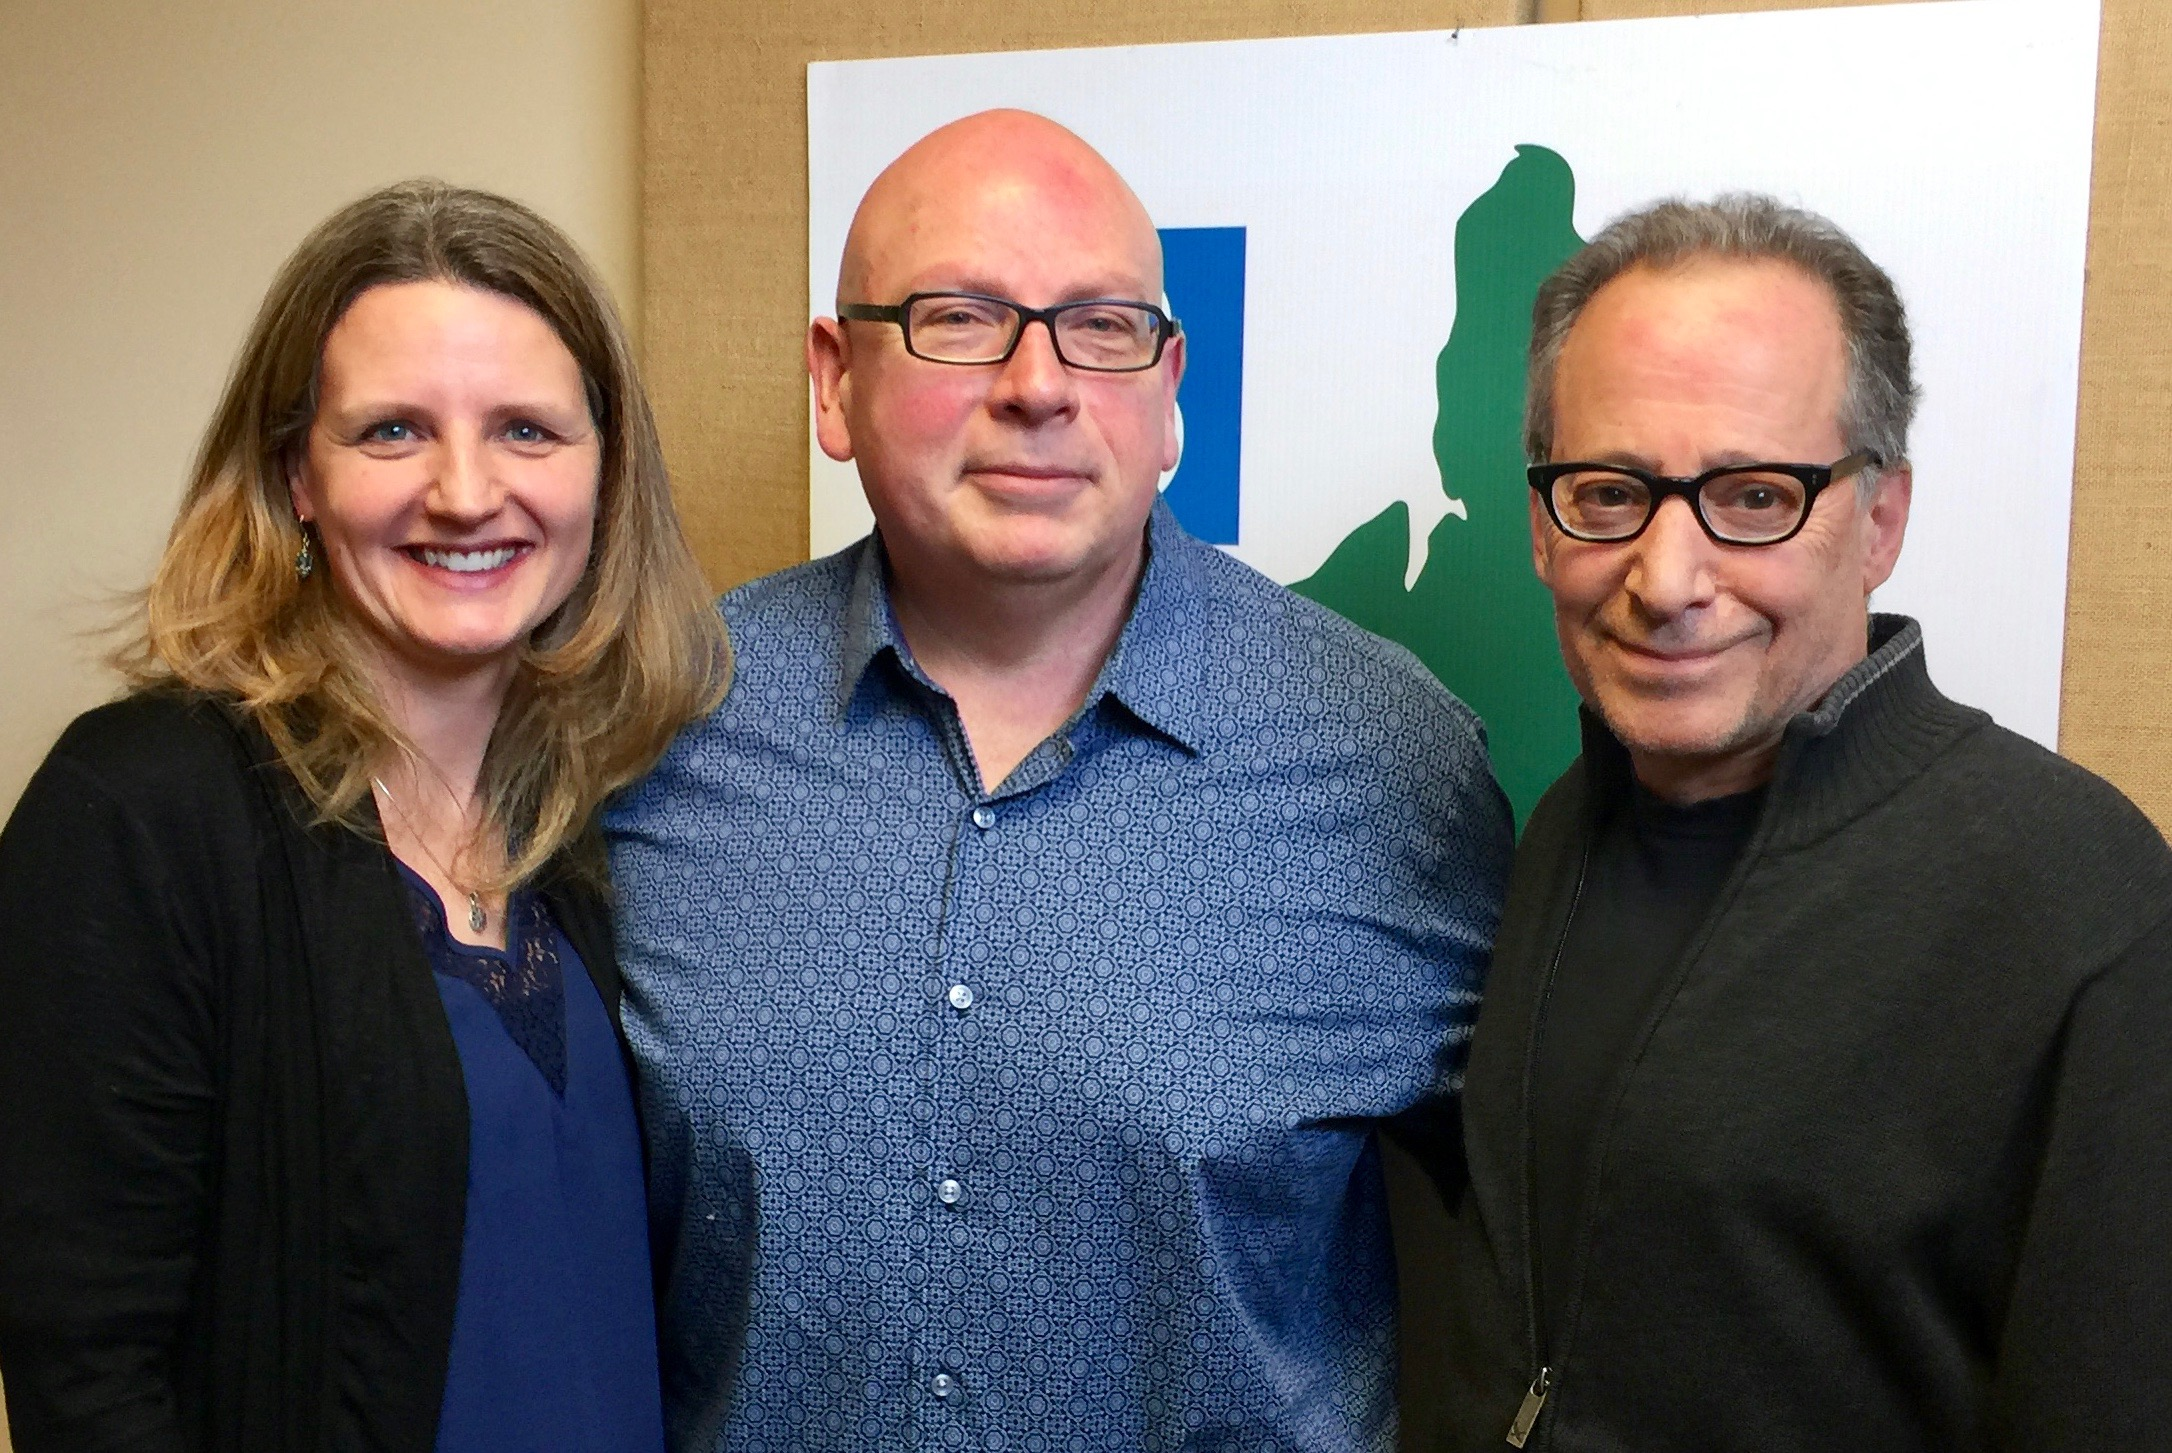 <i>Podcast: What's Up Bainbridge:</i> <br>Musical by honored playwright Paul Lewis opens at the Jewel Box on March 17